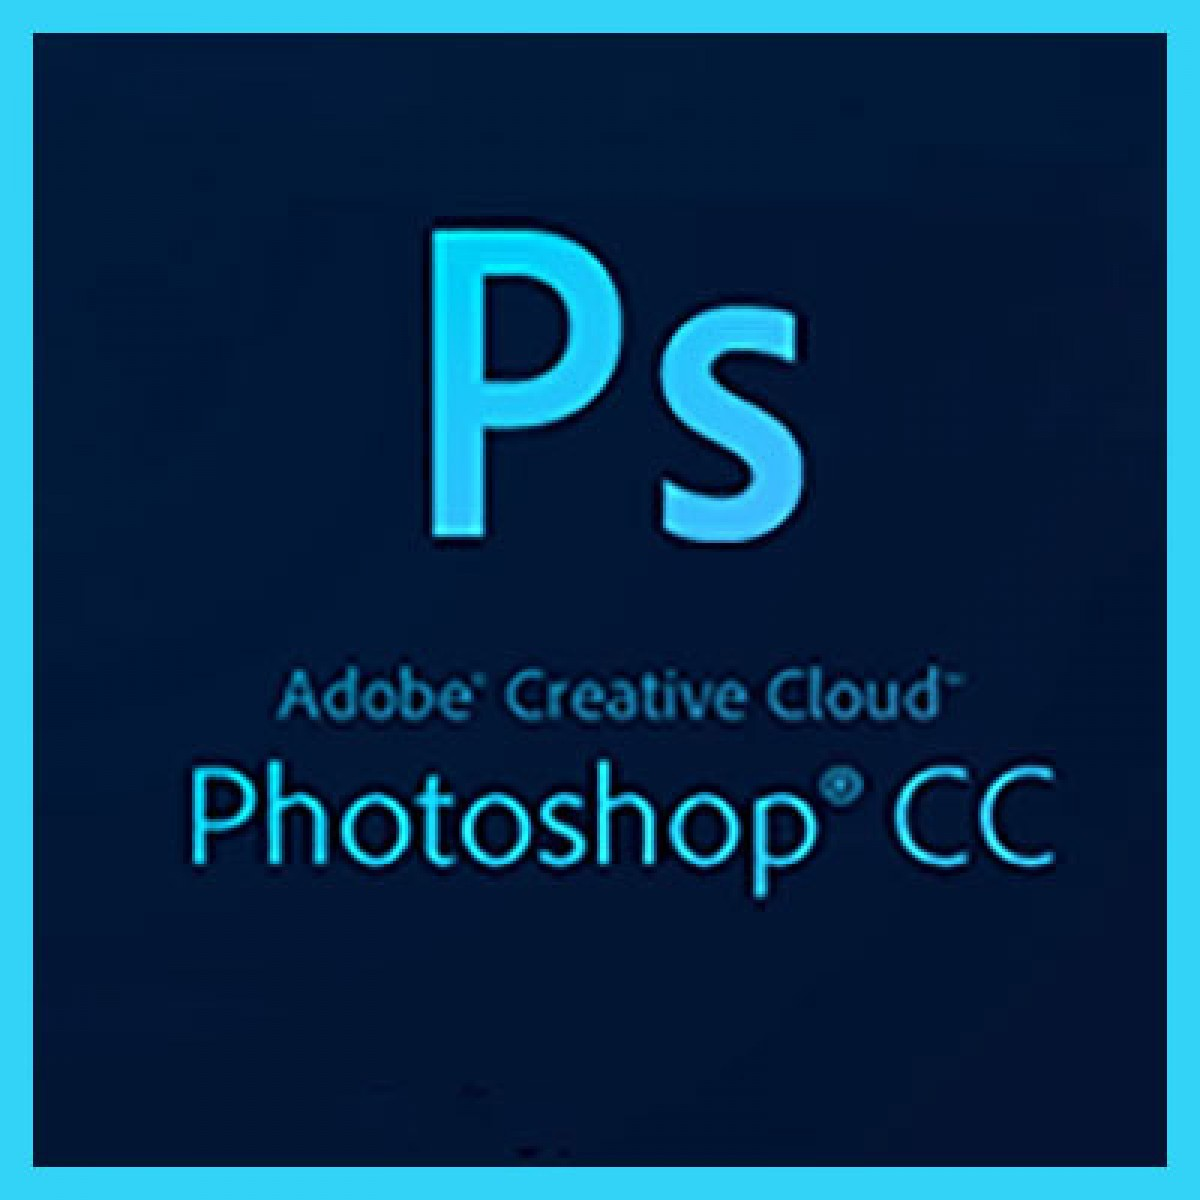 photoshop cc 2018 full cracked